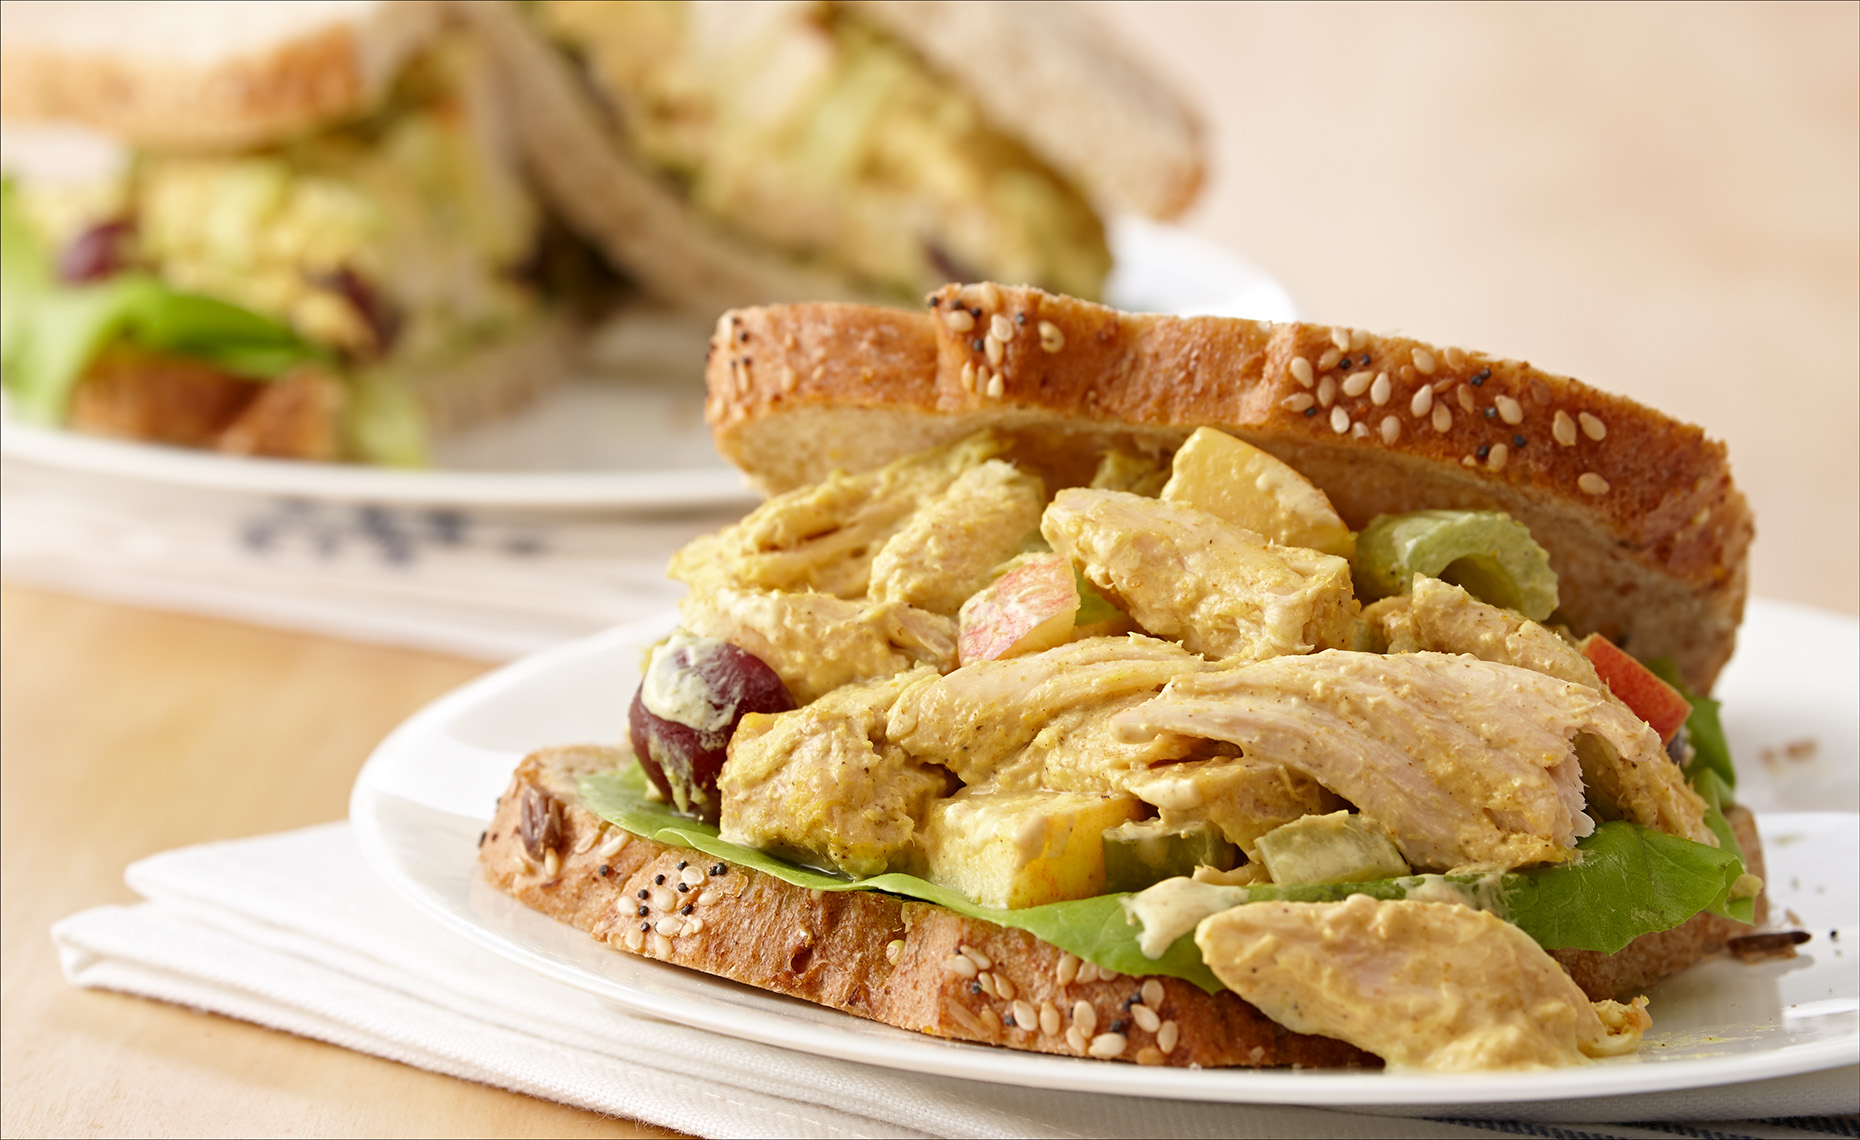 Food Photographer,  Chicken Photography, Poultry Photography | Pohuski Studios,  Curry Chicken Salad